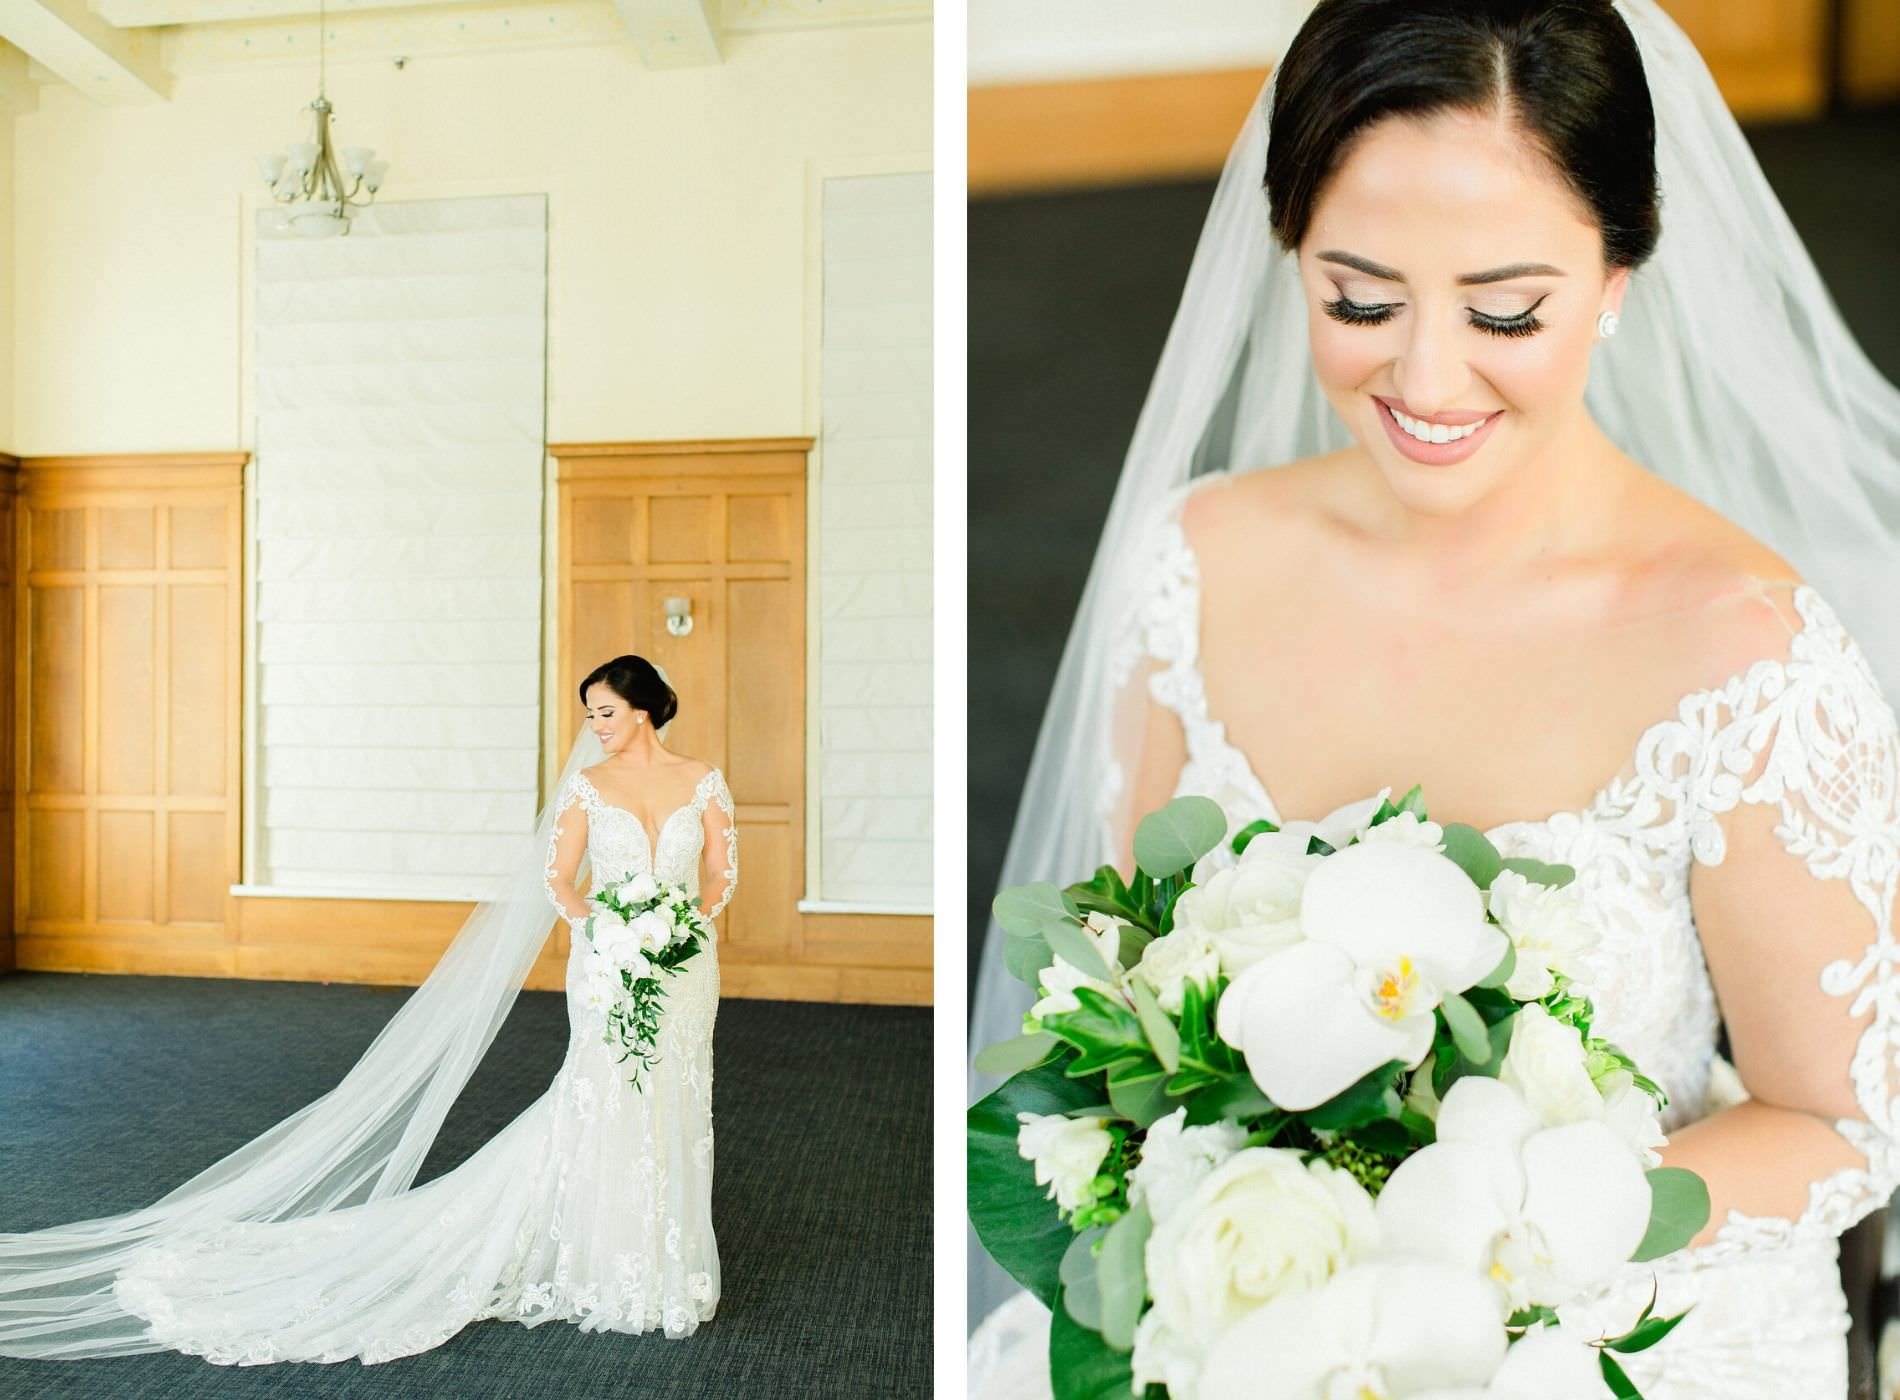 Romantic Florida Bride in Illusion Lace Sleeve Fit and Flare Wedding Dress, Holding White Orchid and Ivory Rose Bouquet with Greenery, Neutral Makeup, Beauty Portrait | South Tampa All Saints Academy | Tampa Bay Wedding Planner Breezin' Weddings